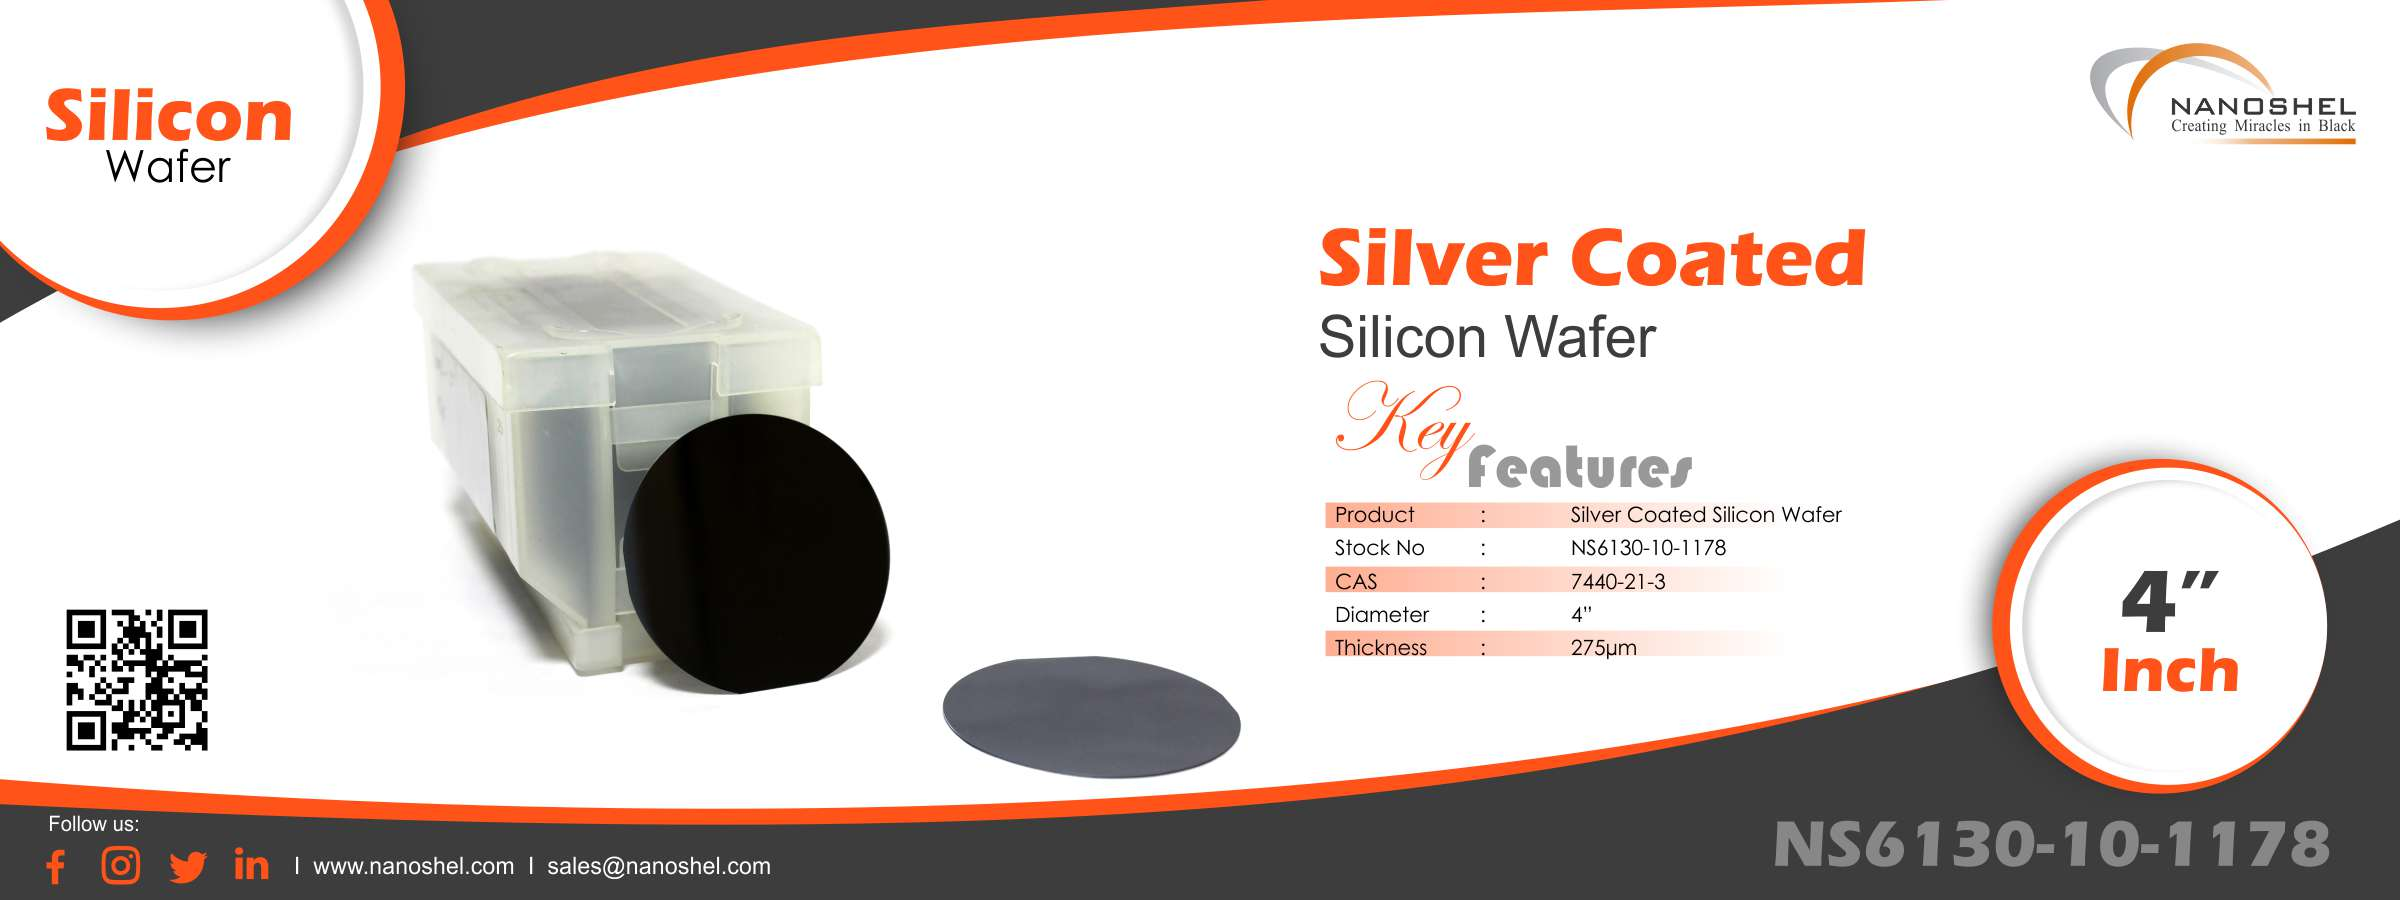 Silicon Wafer Silver Coated